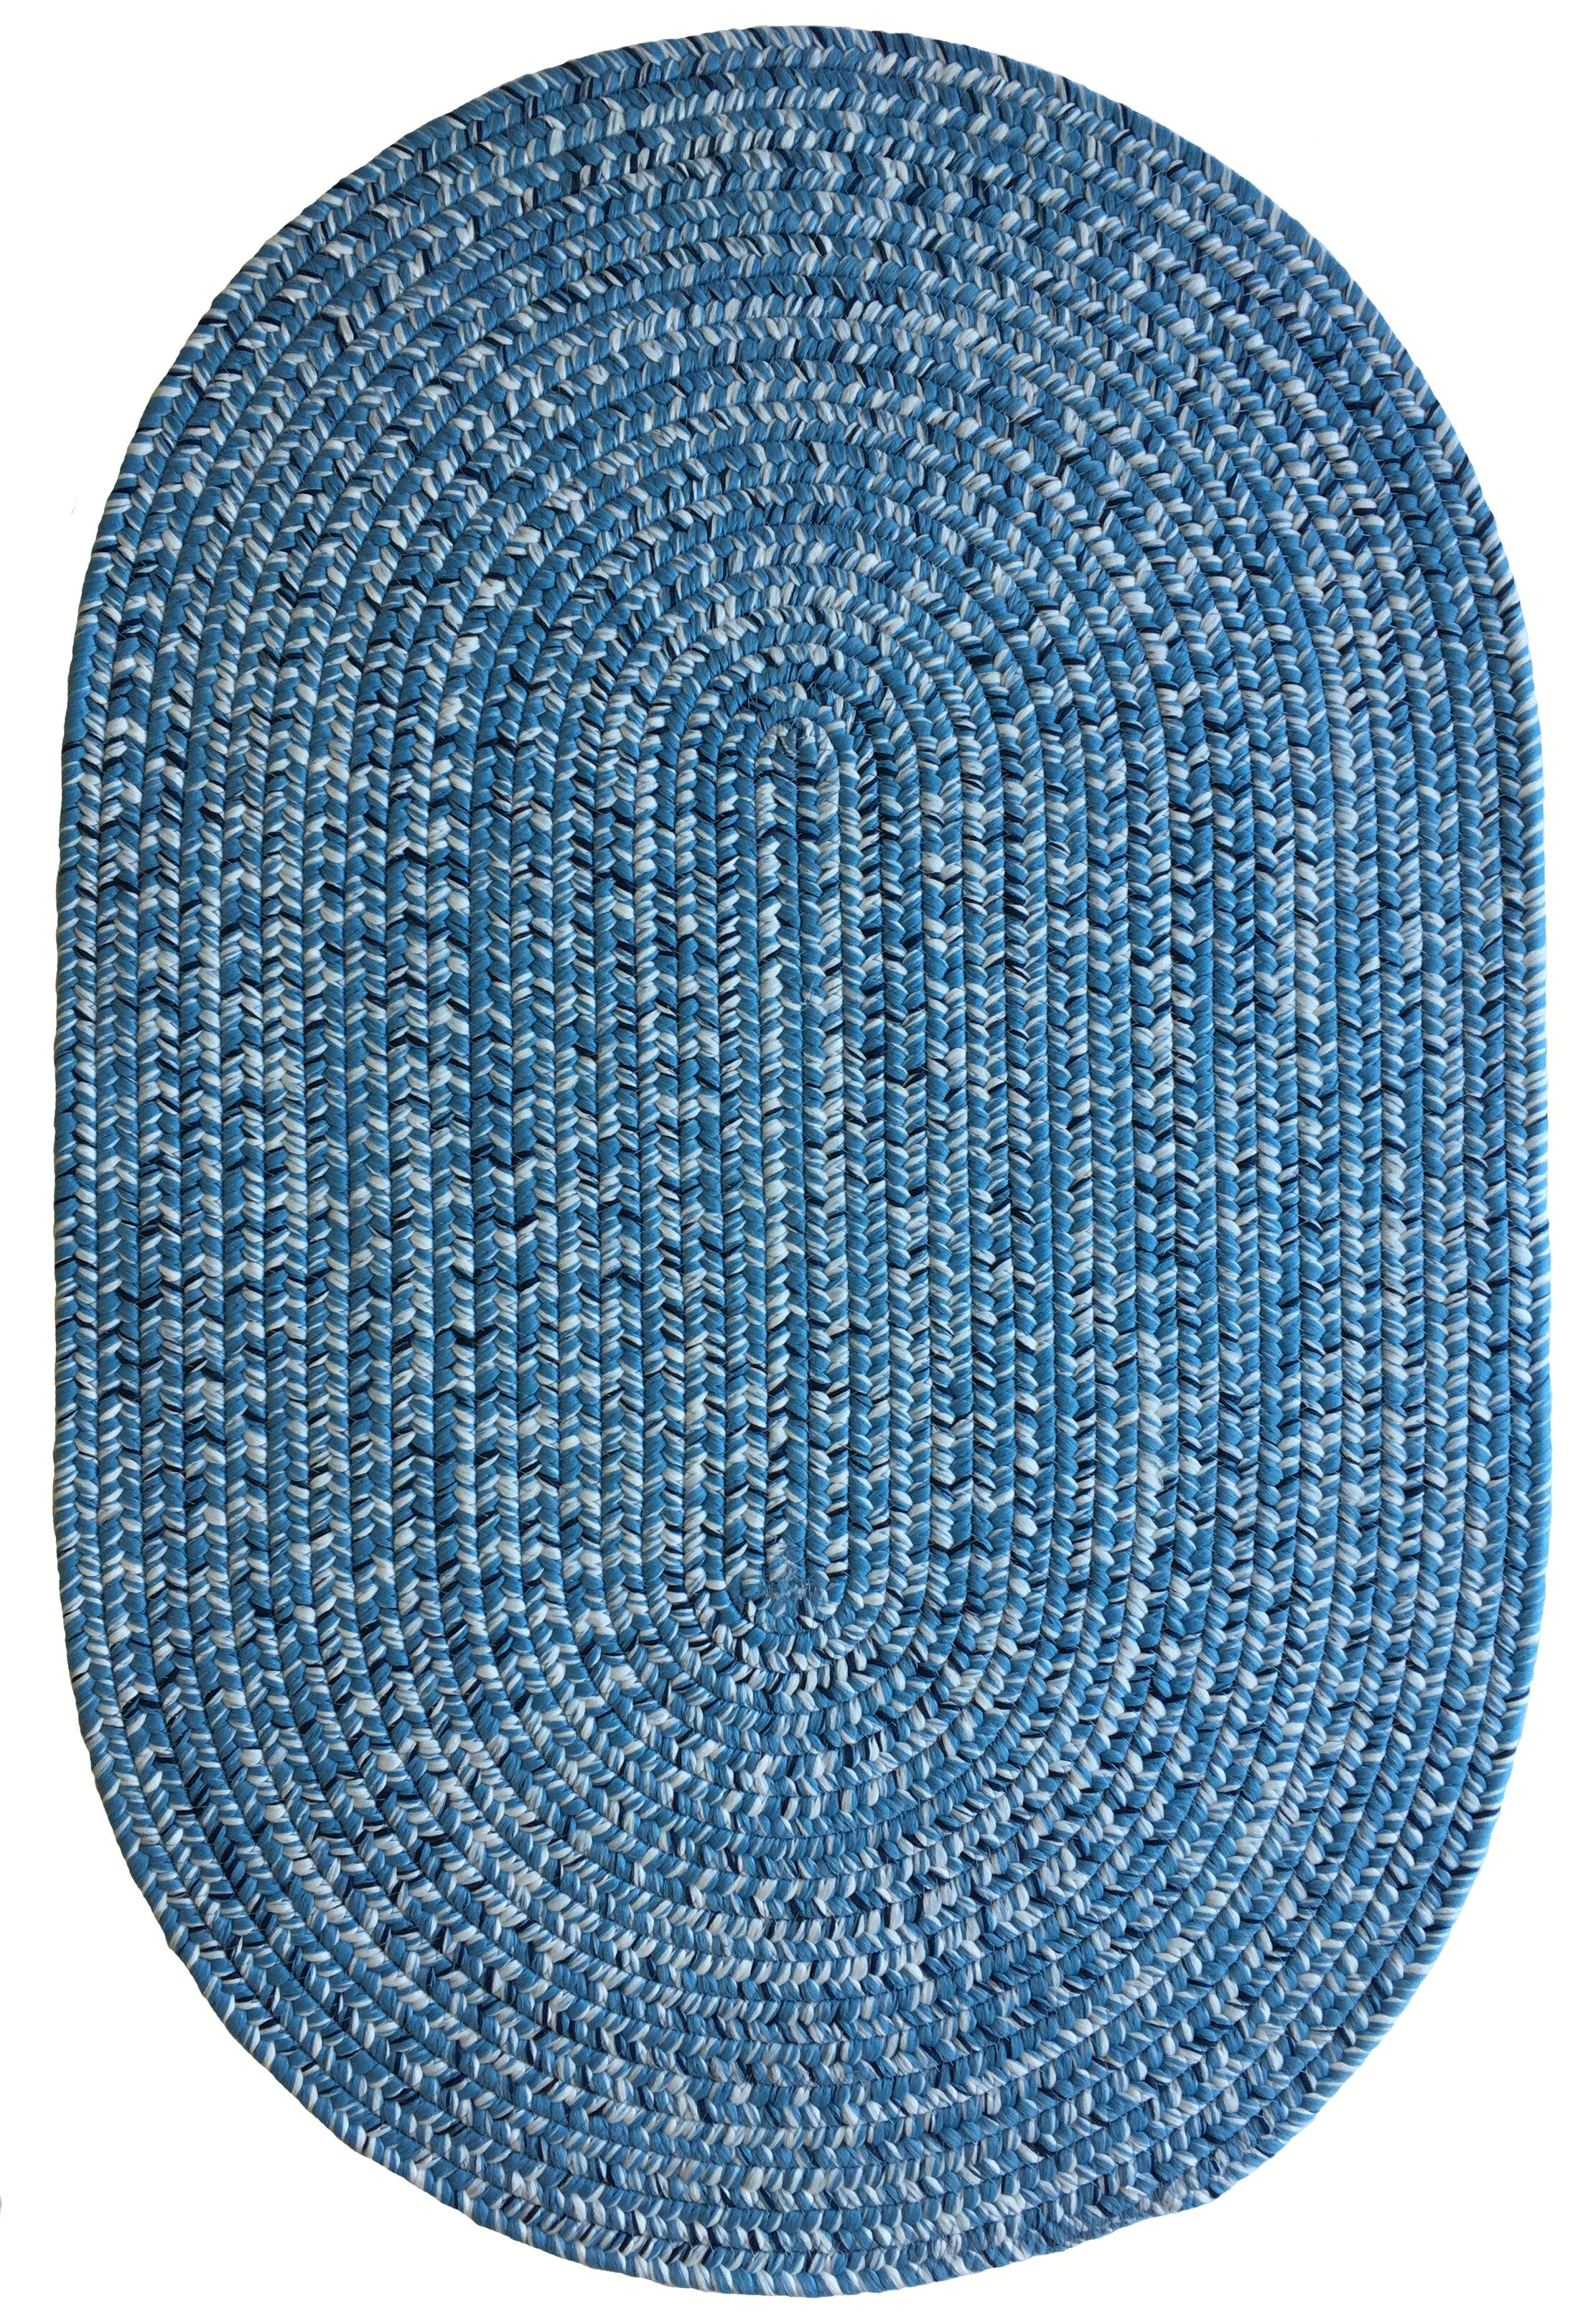 One-of-a-Kind Aukerman Hand-Braided Light Blue Indoor/Outdoor Area Rug Rug Size: Oval 8' x 11'